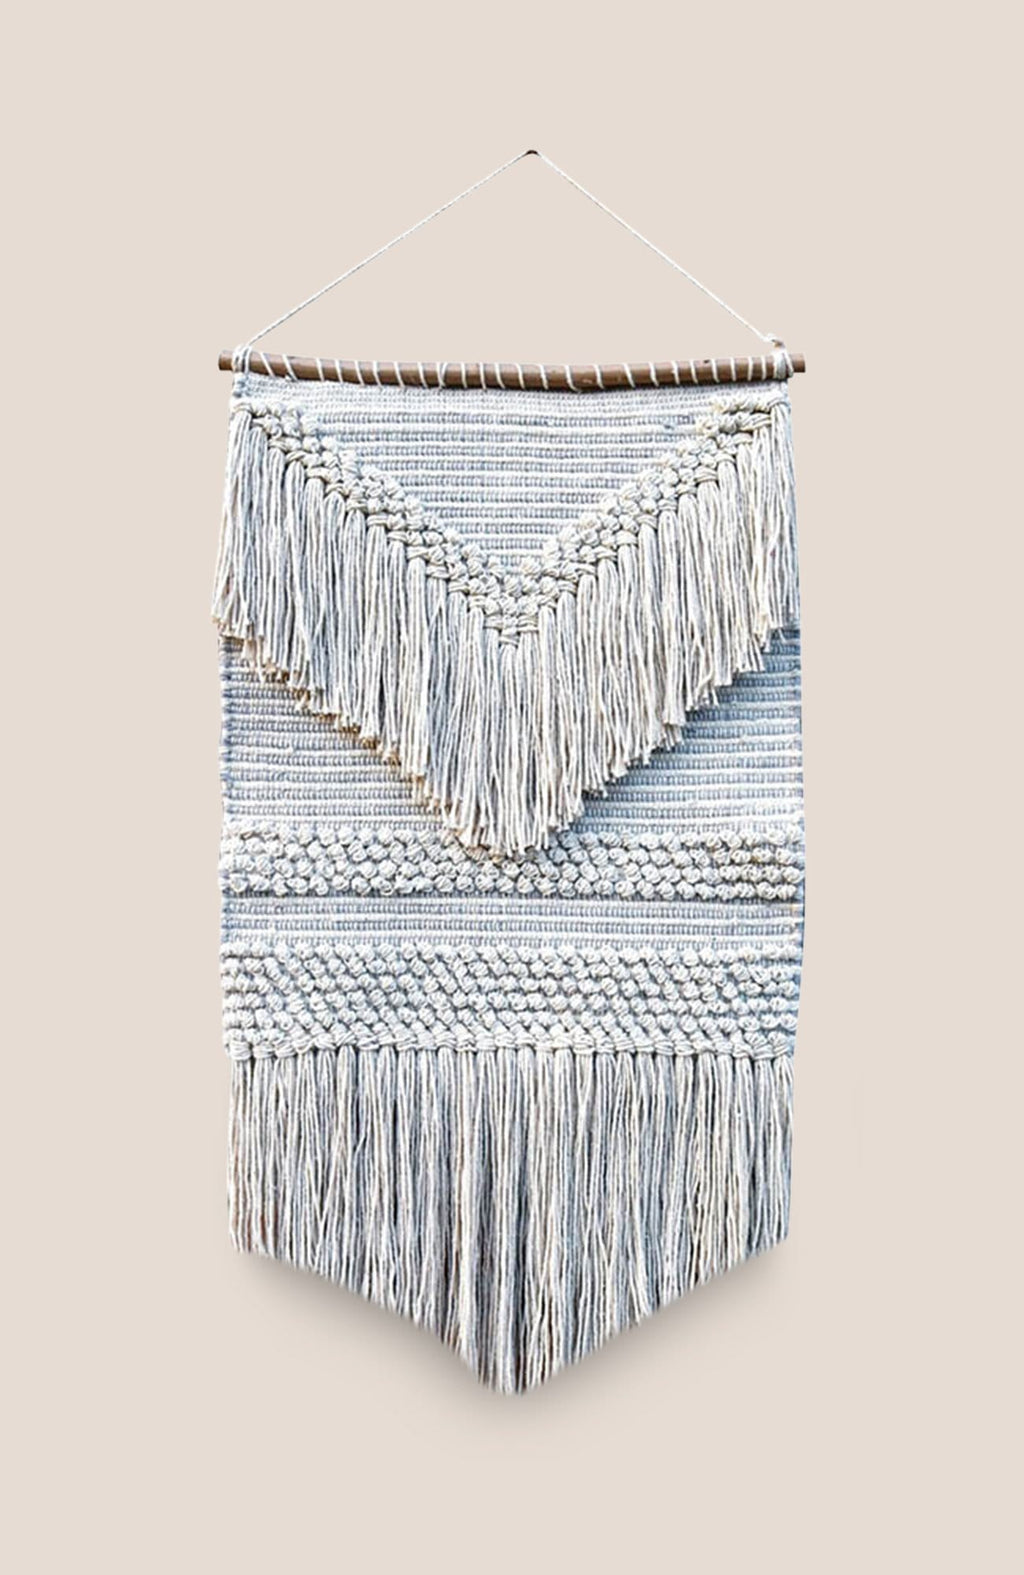 Macrame Wall Hanging Kima - Home Decor | Shop Baskets, Ceramics, Pillows, Rugs & Wall Hangs online